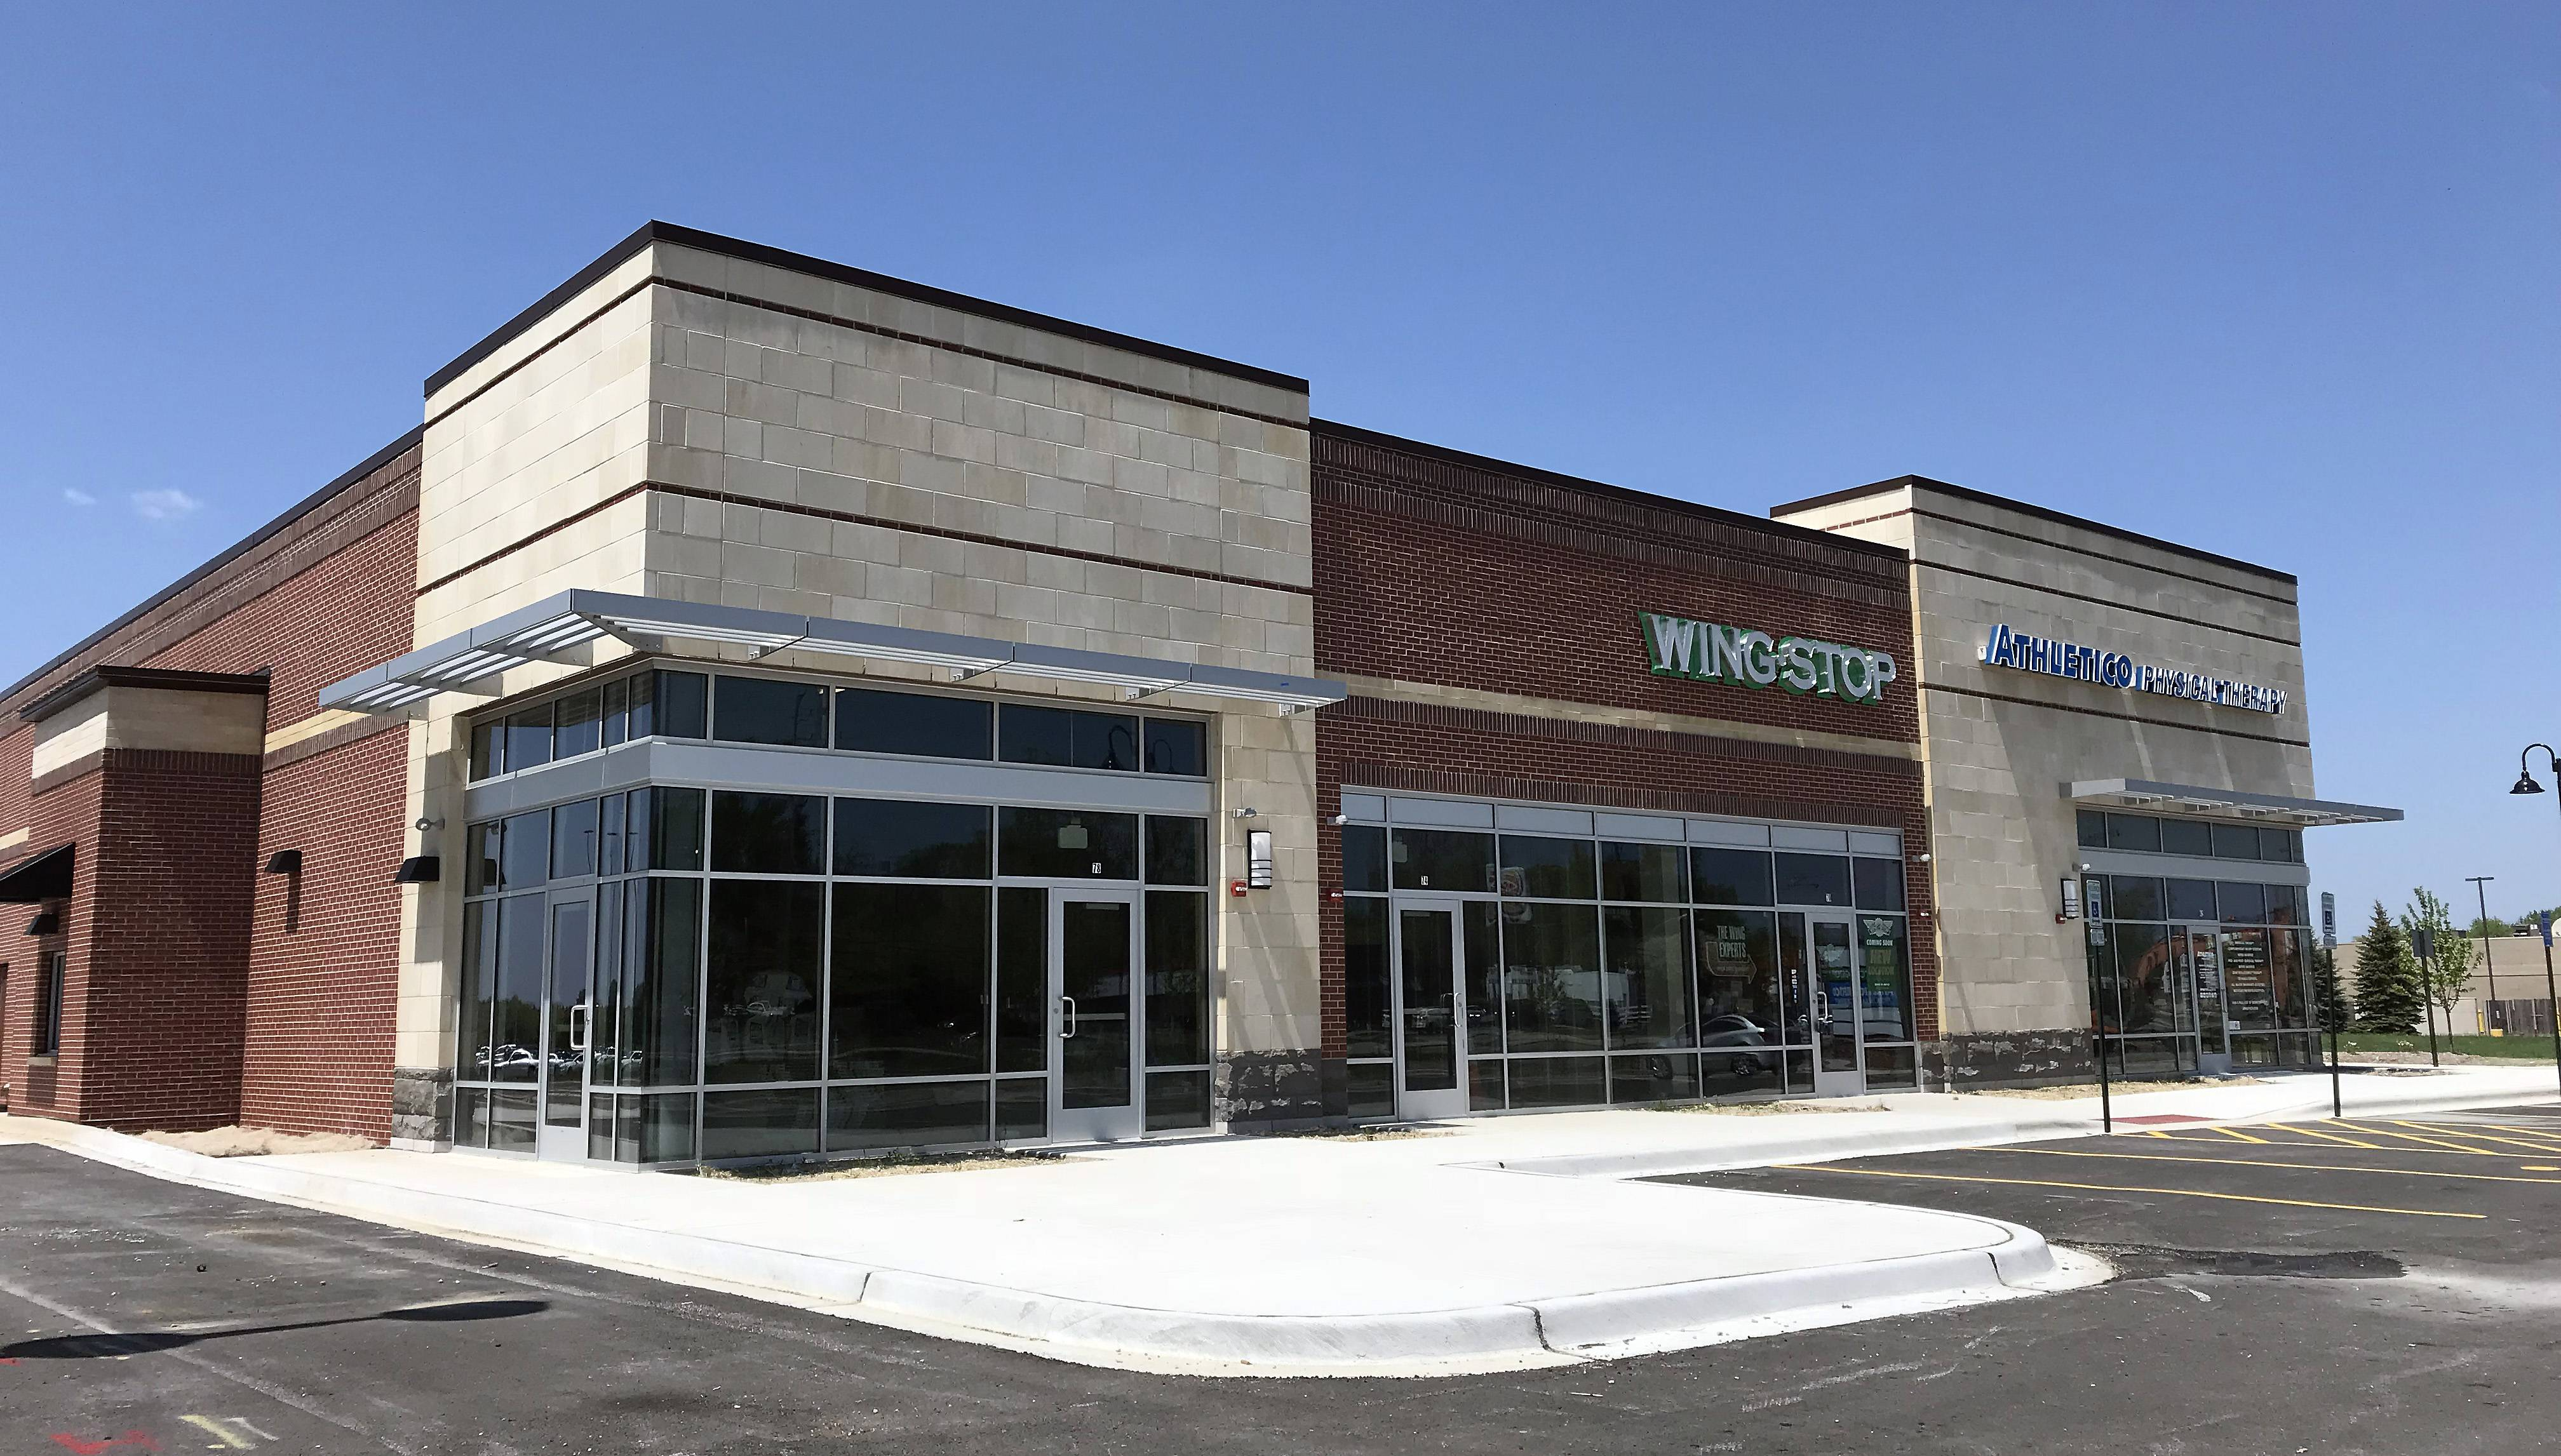 A Starbucks is opening in one of the tenant spaces in an outlot of Carpentersville's Walmart Supercenter on Route 25.